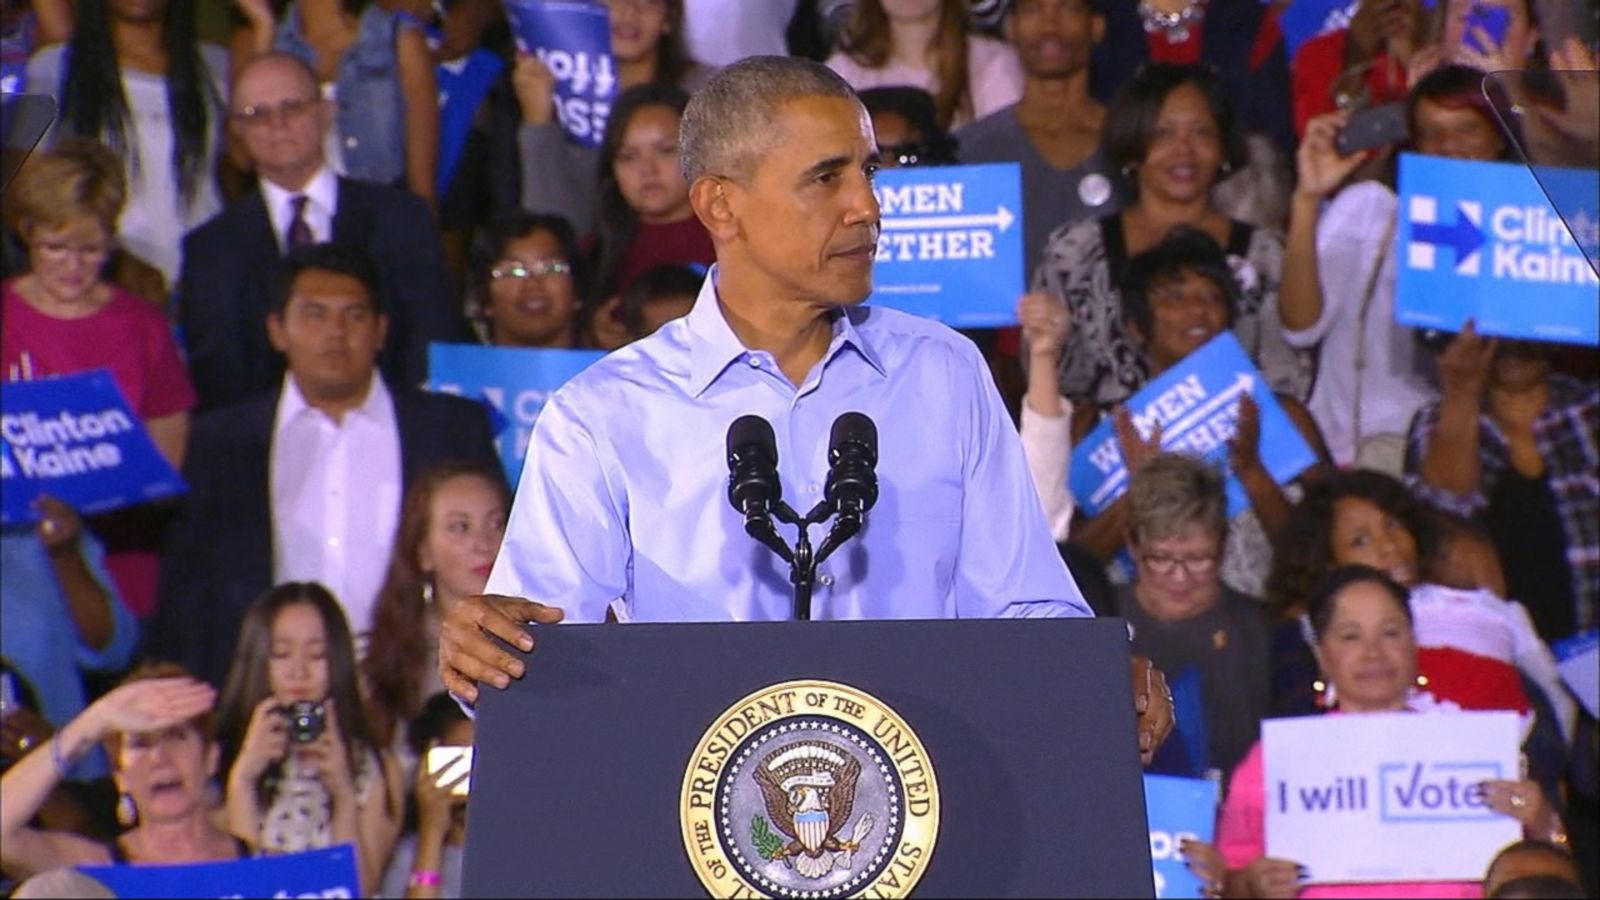 VIDEO: President Obama continued his assault on down-ballot Republicans in Nevada Sunday, criticizing Senate candidate Joe Heck and the GOP at large for enabling Donald Trump, while urging Nevadans to send Democrats to Congress.